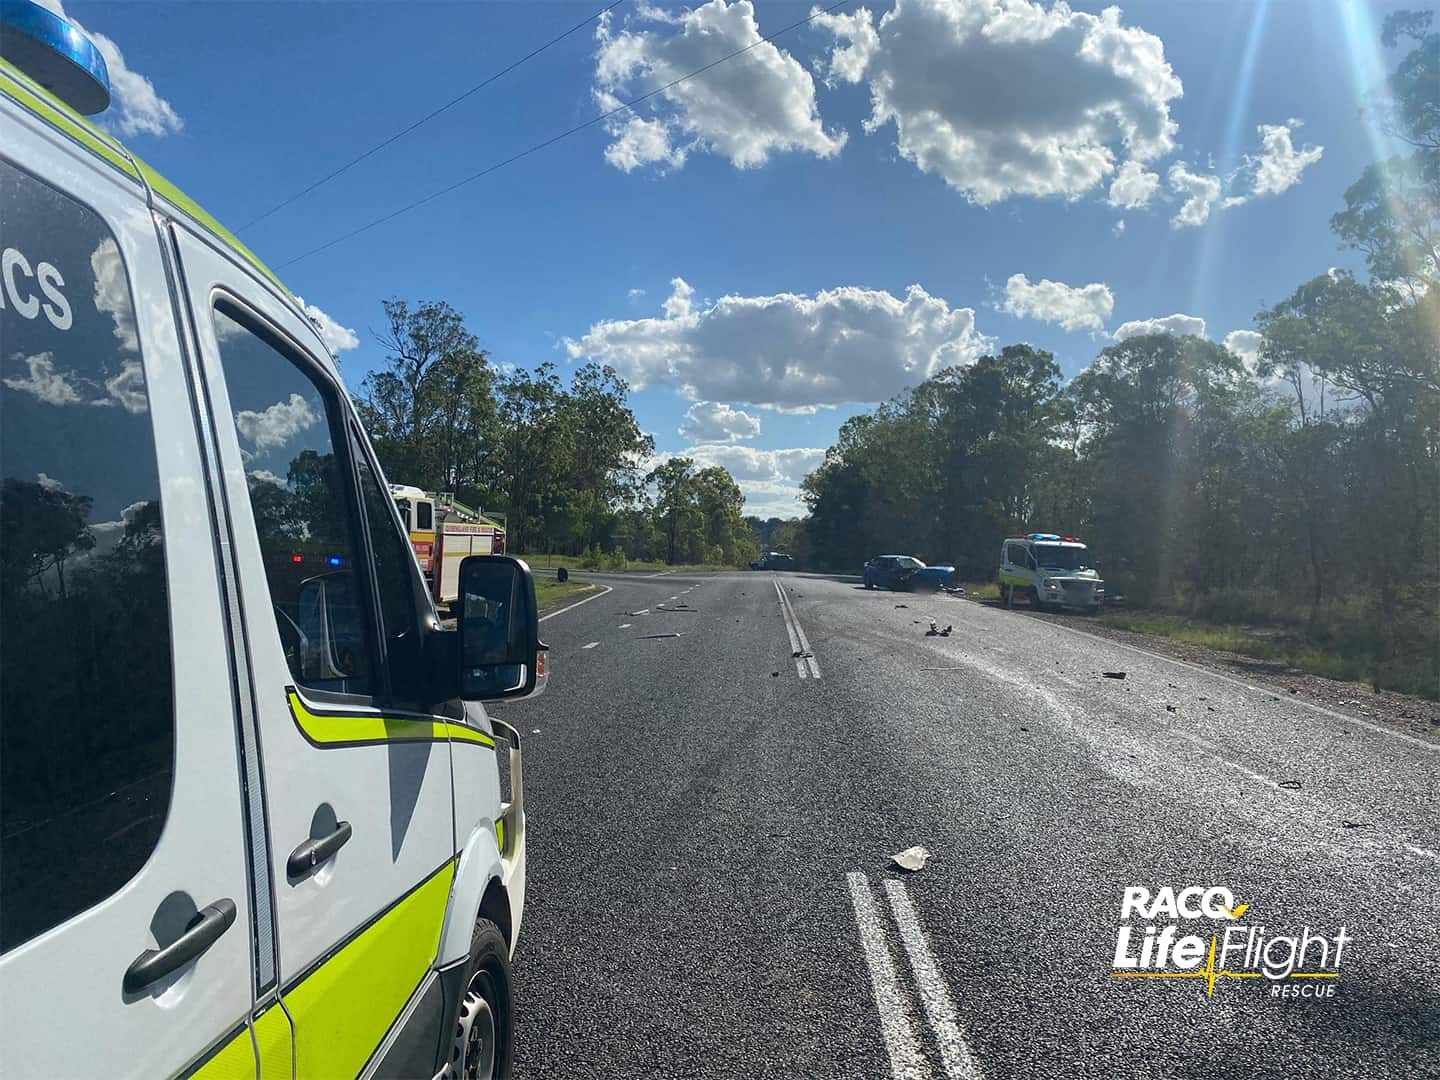 Seriously injured woman airlifted after head-on collision